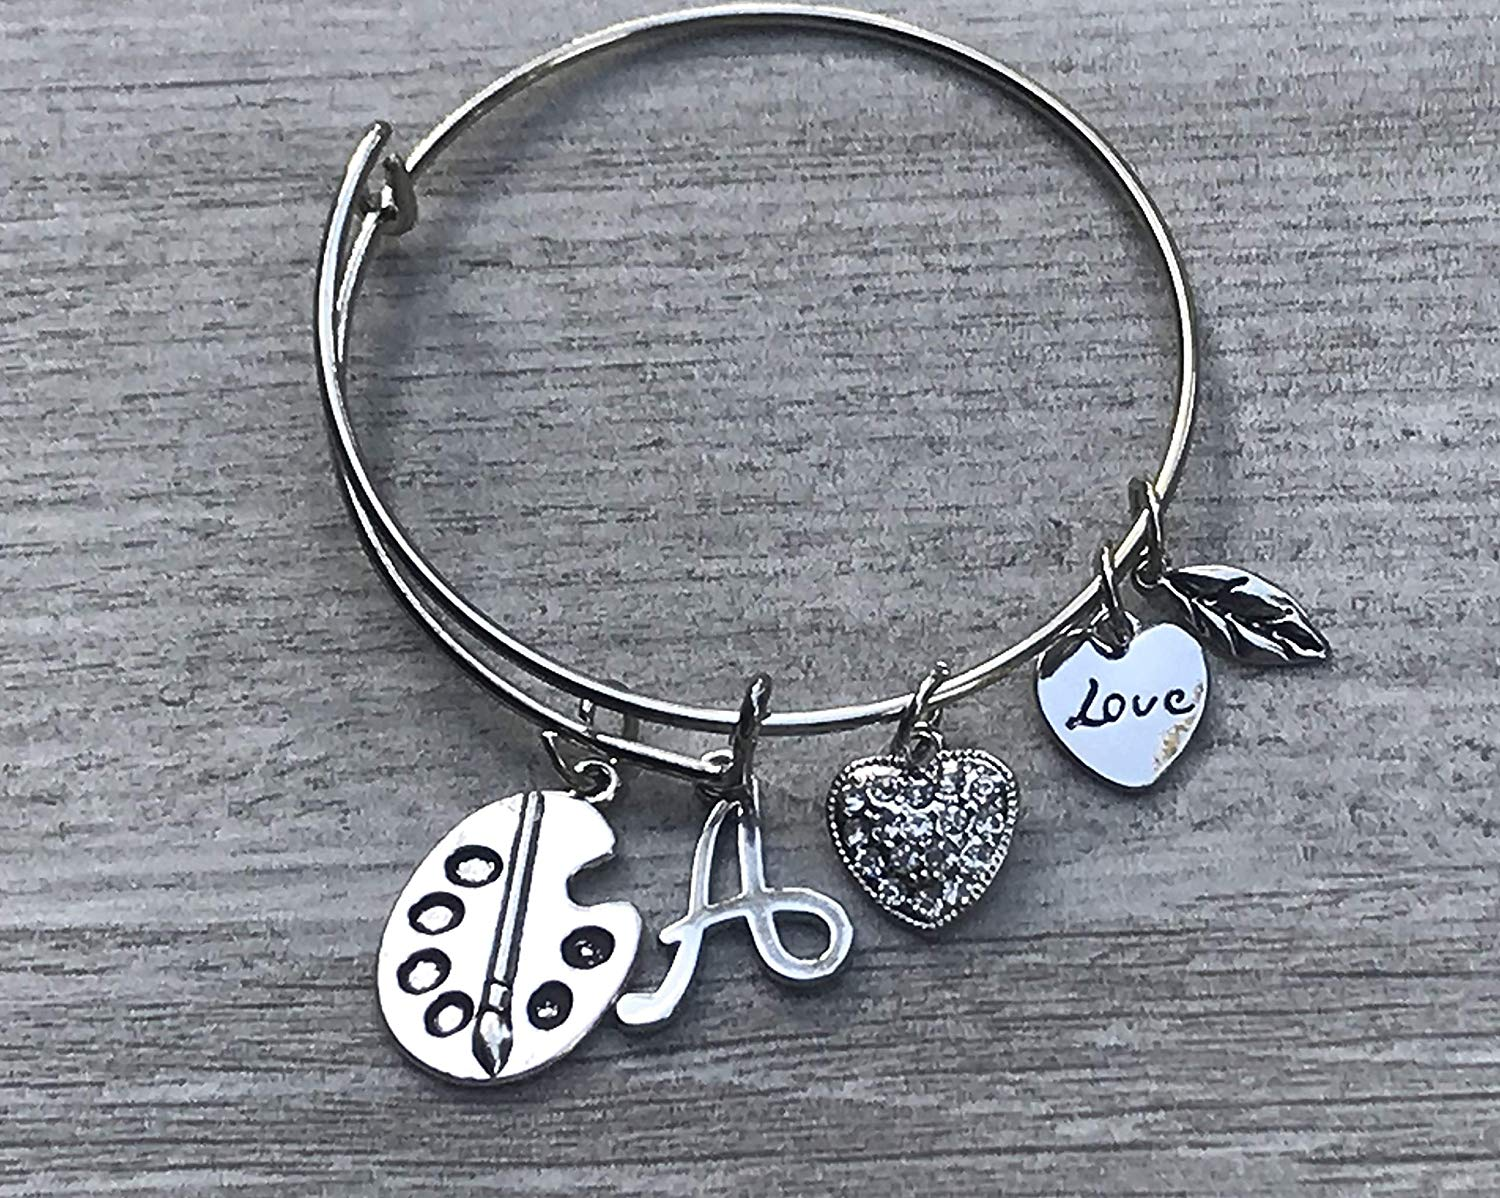 Personalized Artist Bangle Bracelet with Initial Letter Charm, Custom Art Jewelry for Her